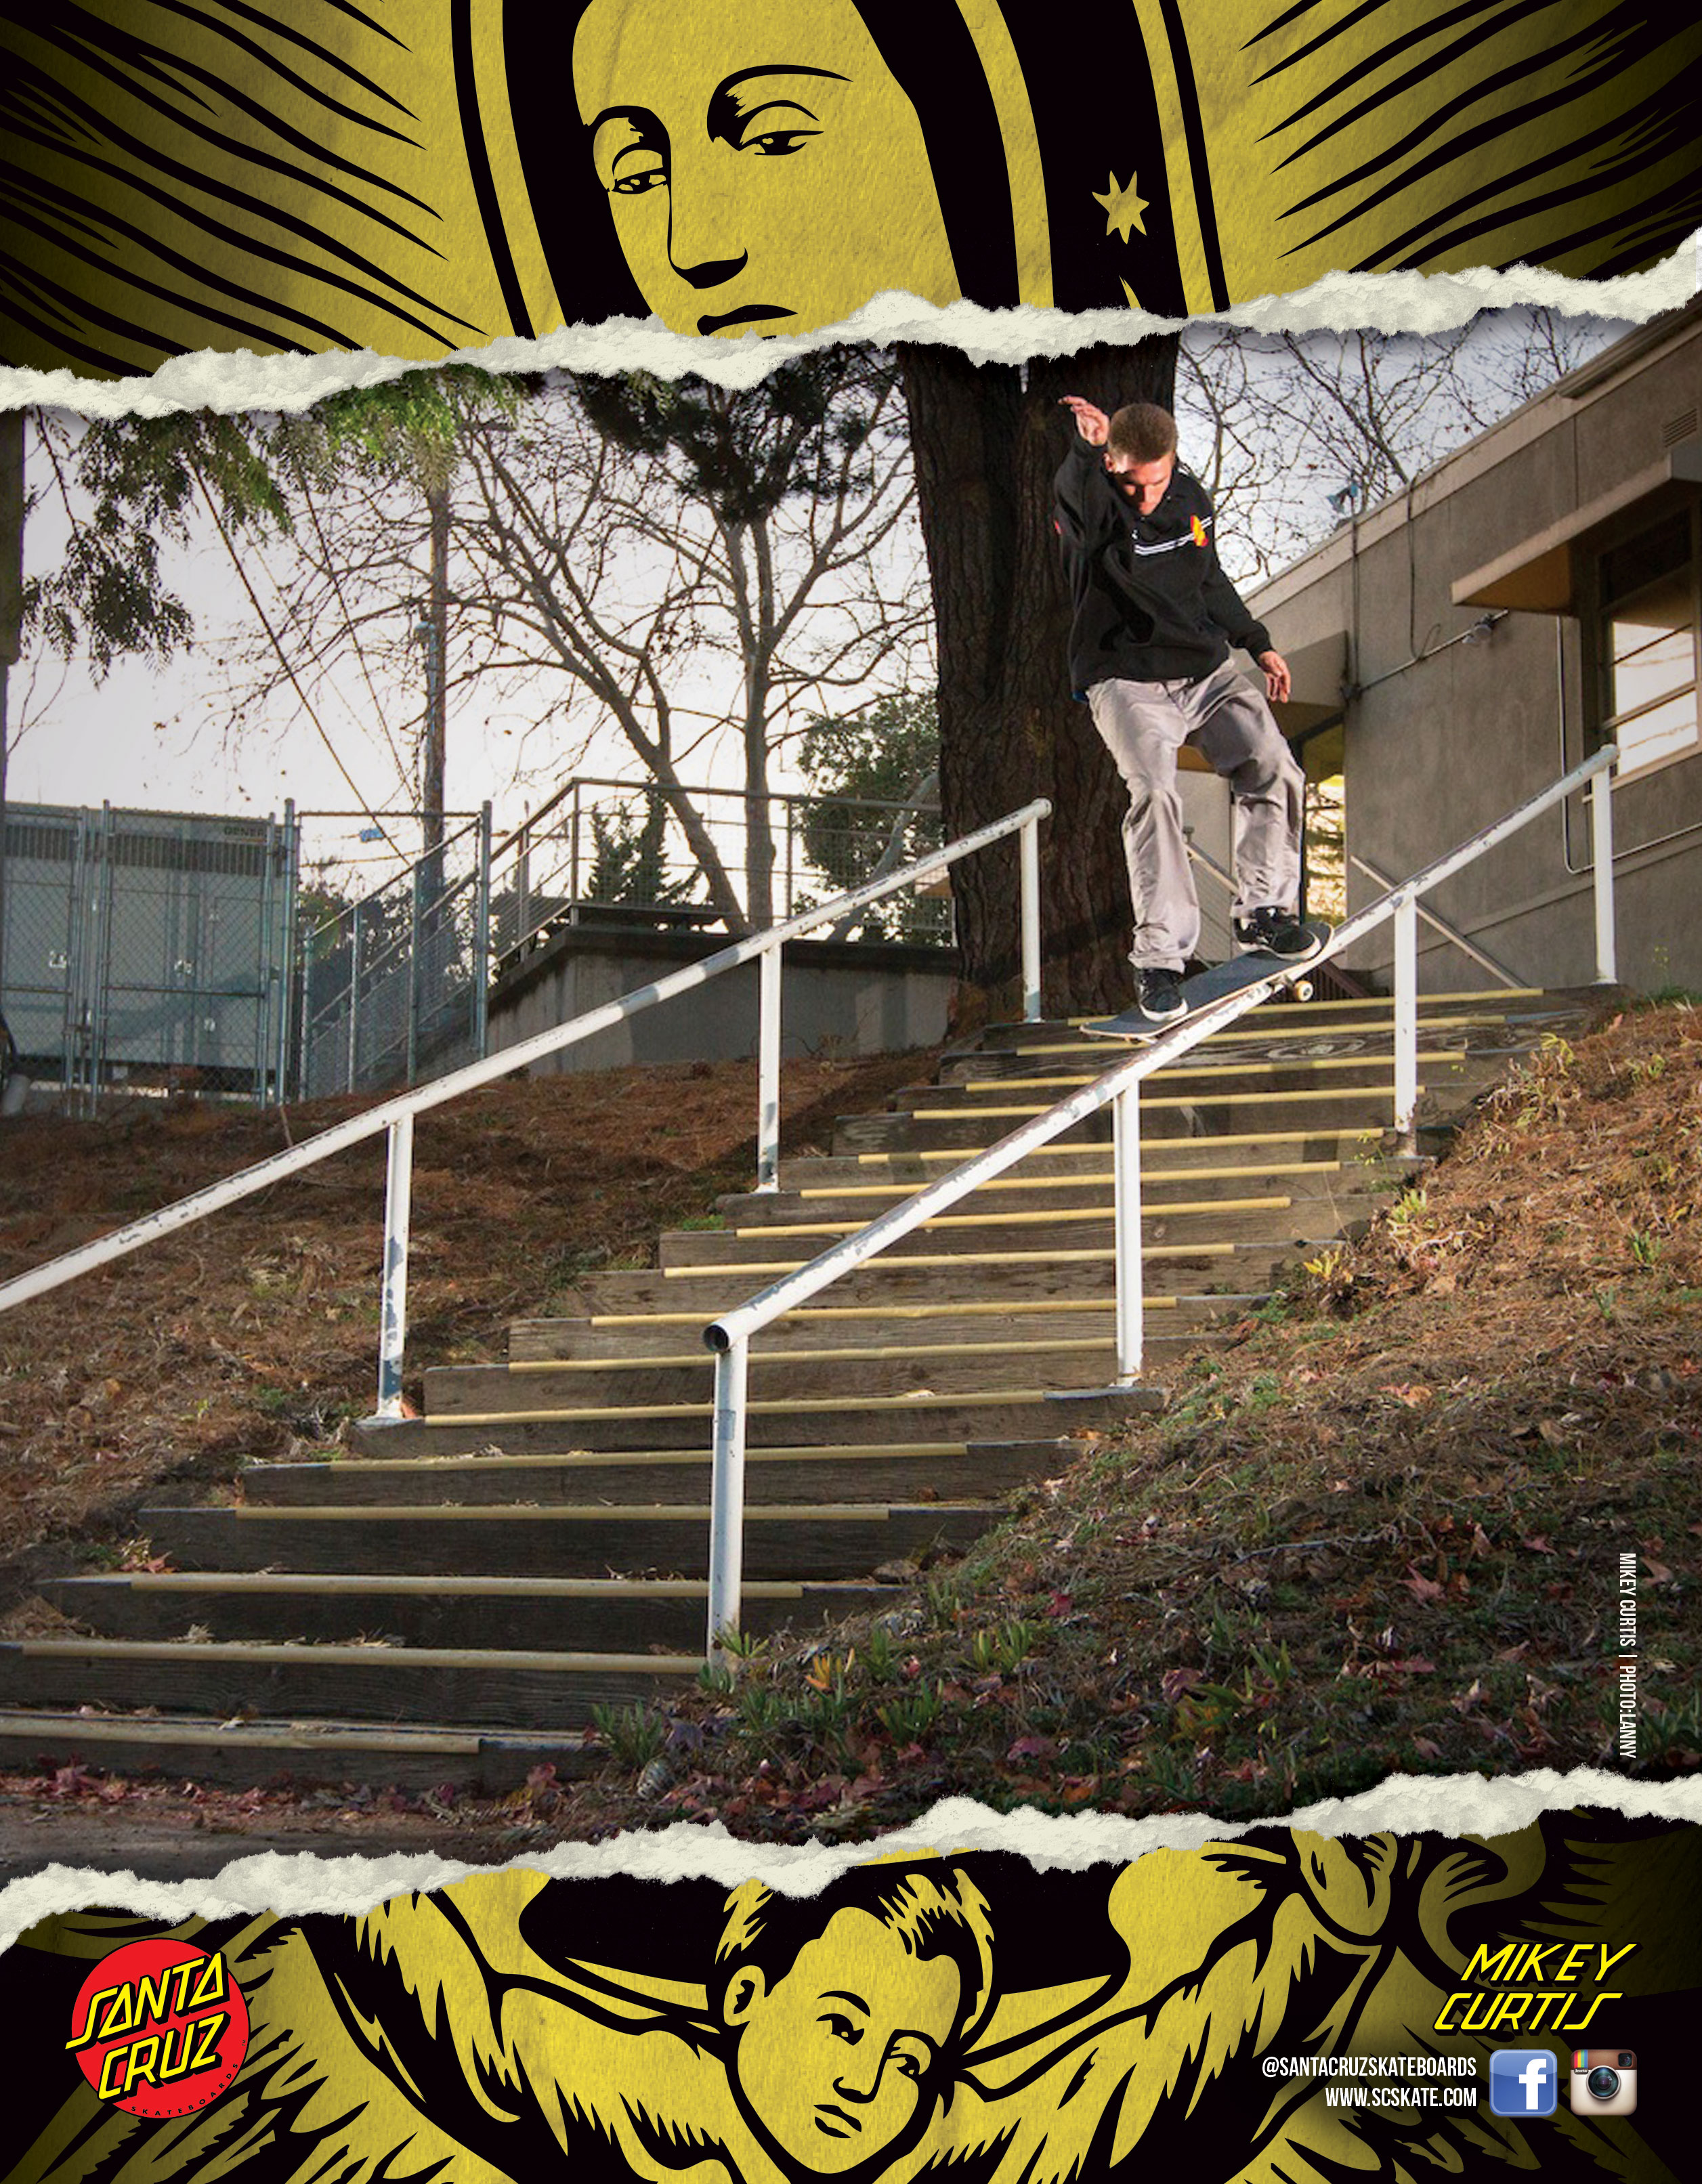 SANTA CRUZ SKATEBOARDS - CURTIS